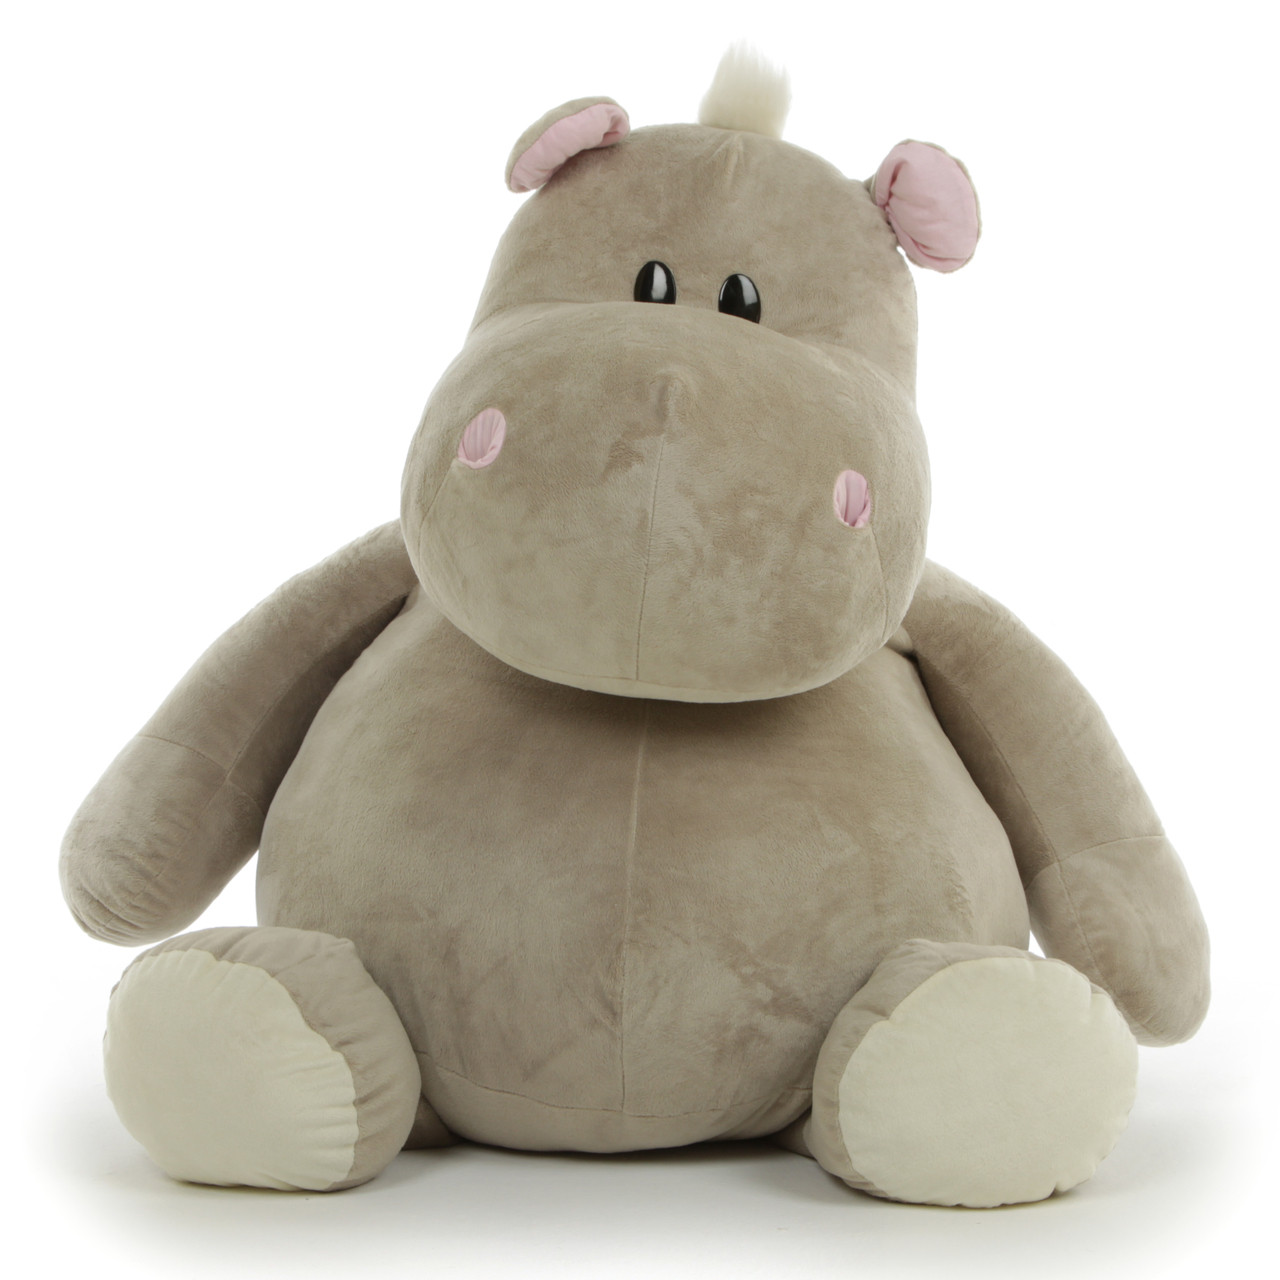 Buni, the mother of the Kubu stuffed hippo pod measures  43 inches (3' 7'') standing, 29 inches (2' 5'') sitting.